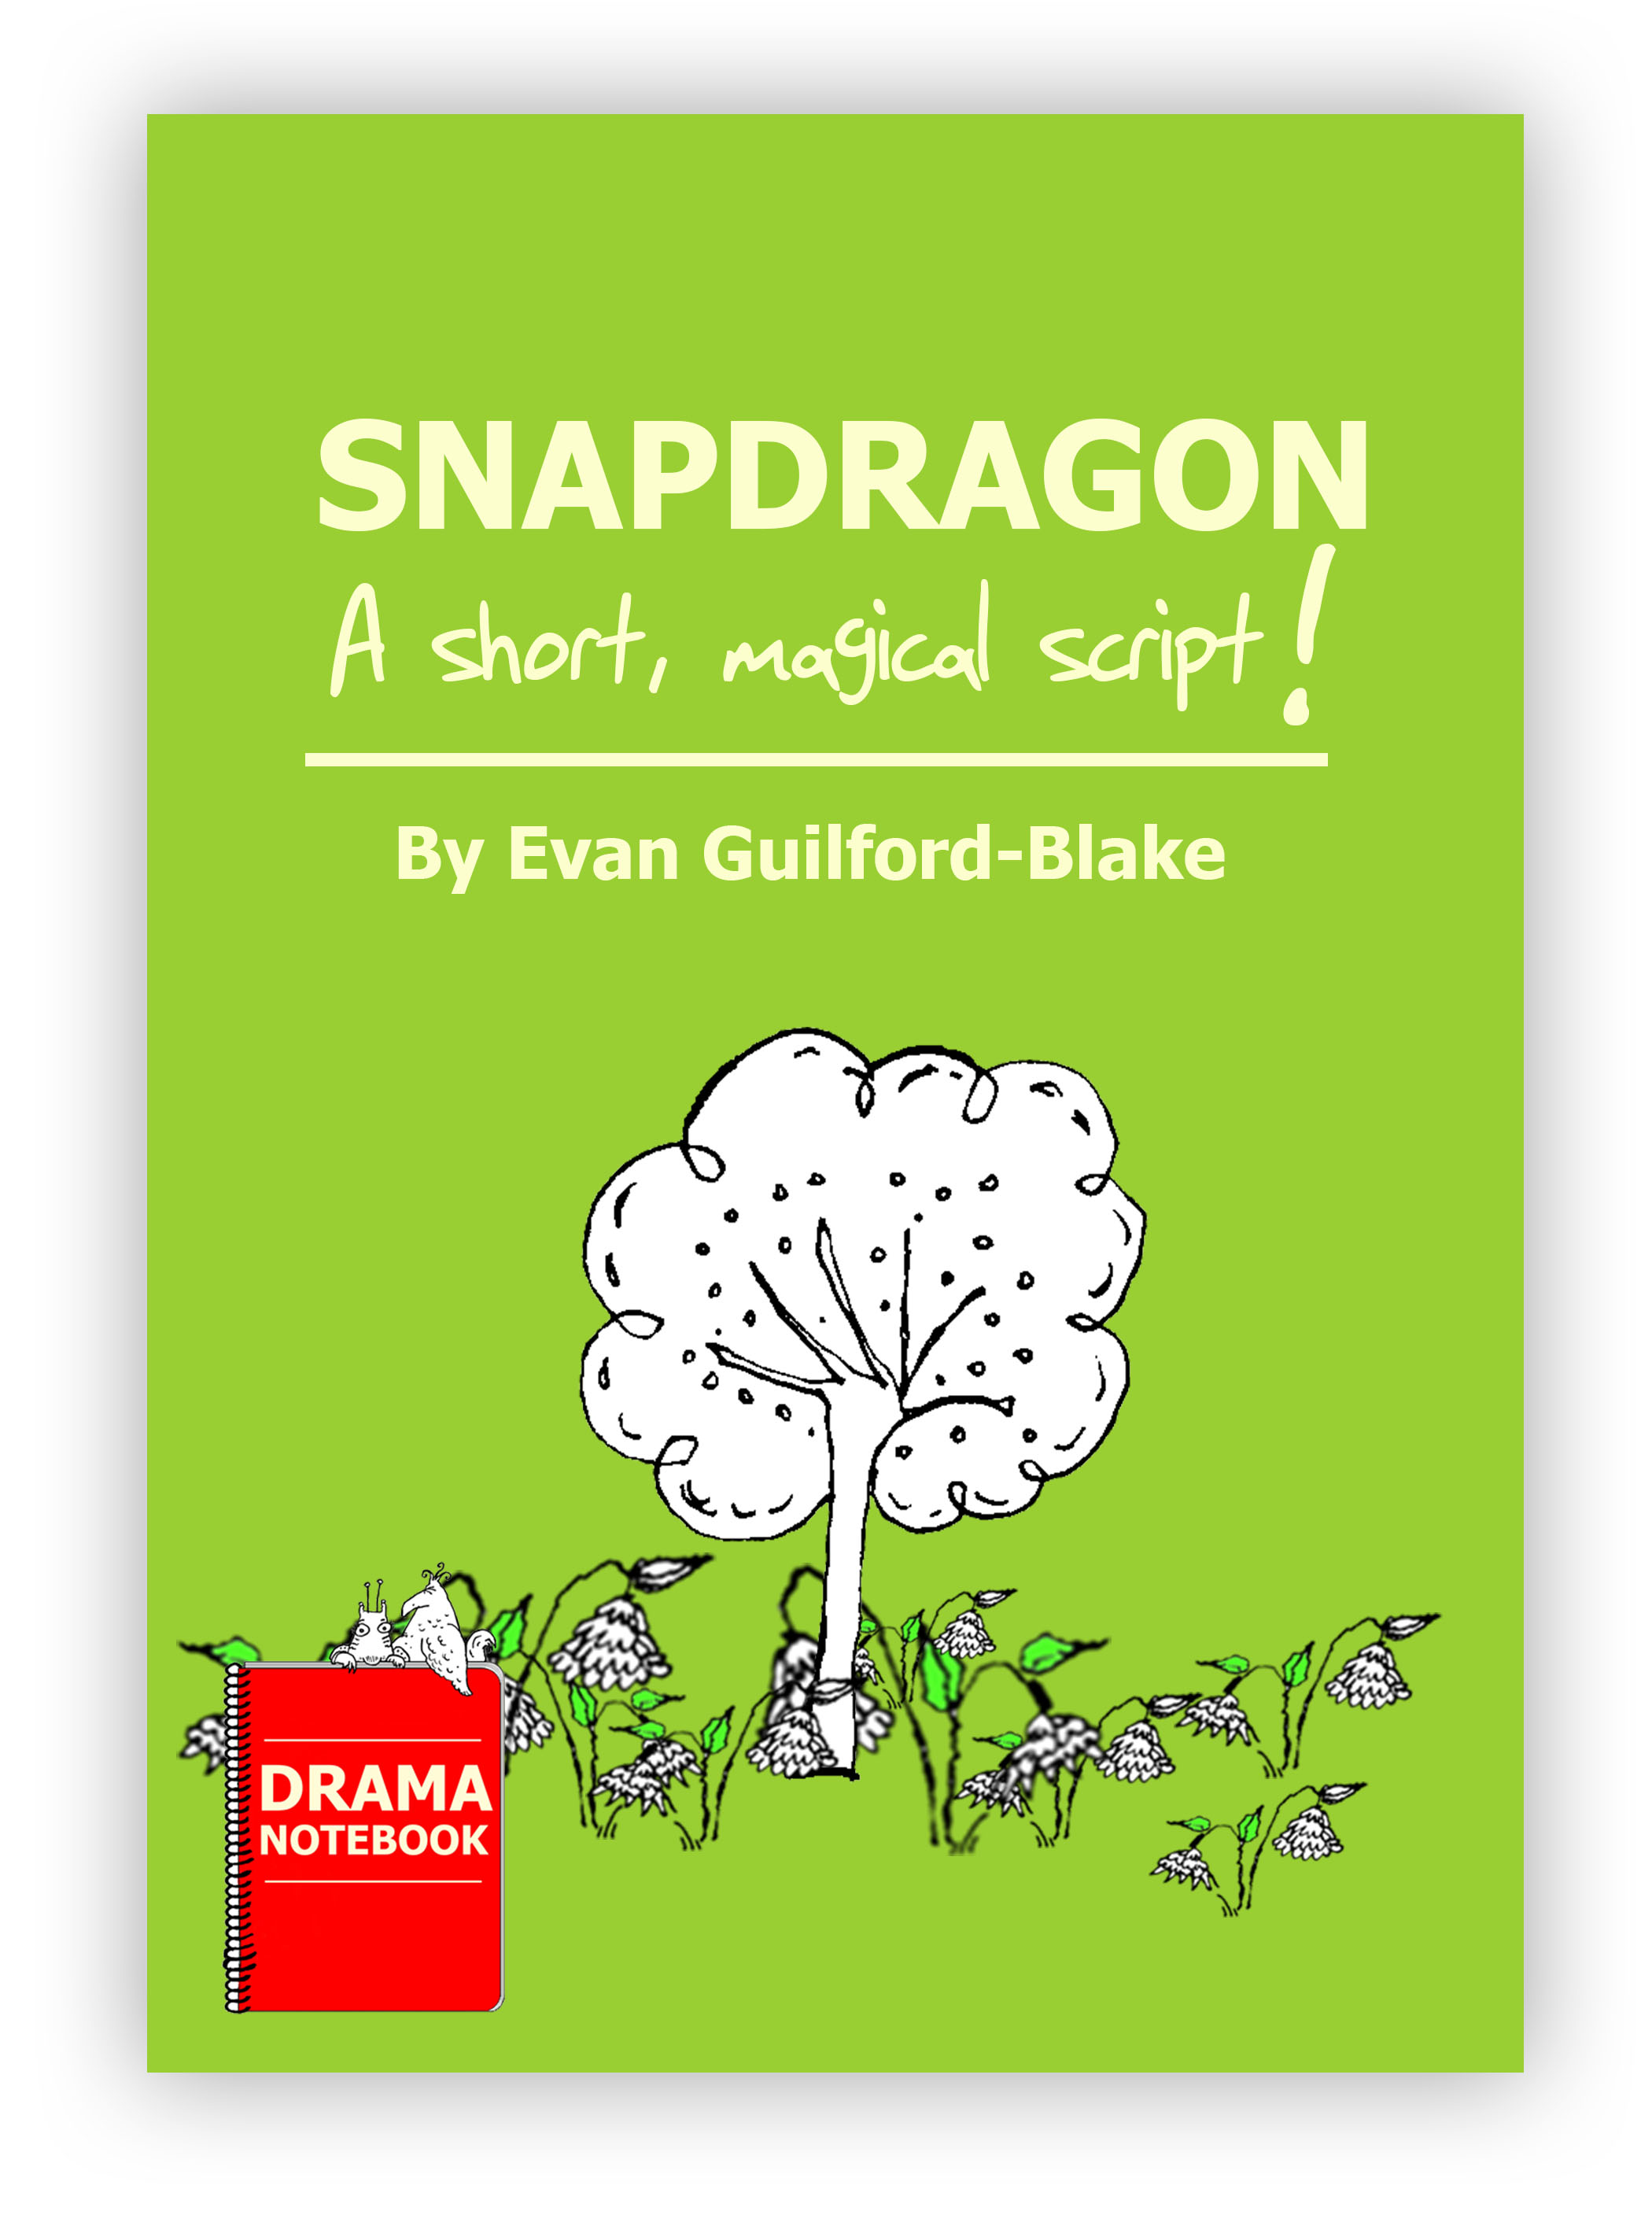 Royalty-free Play Script for Schools-SnapDragon